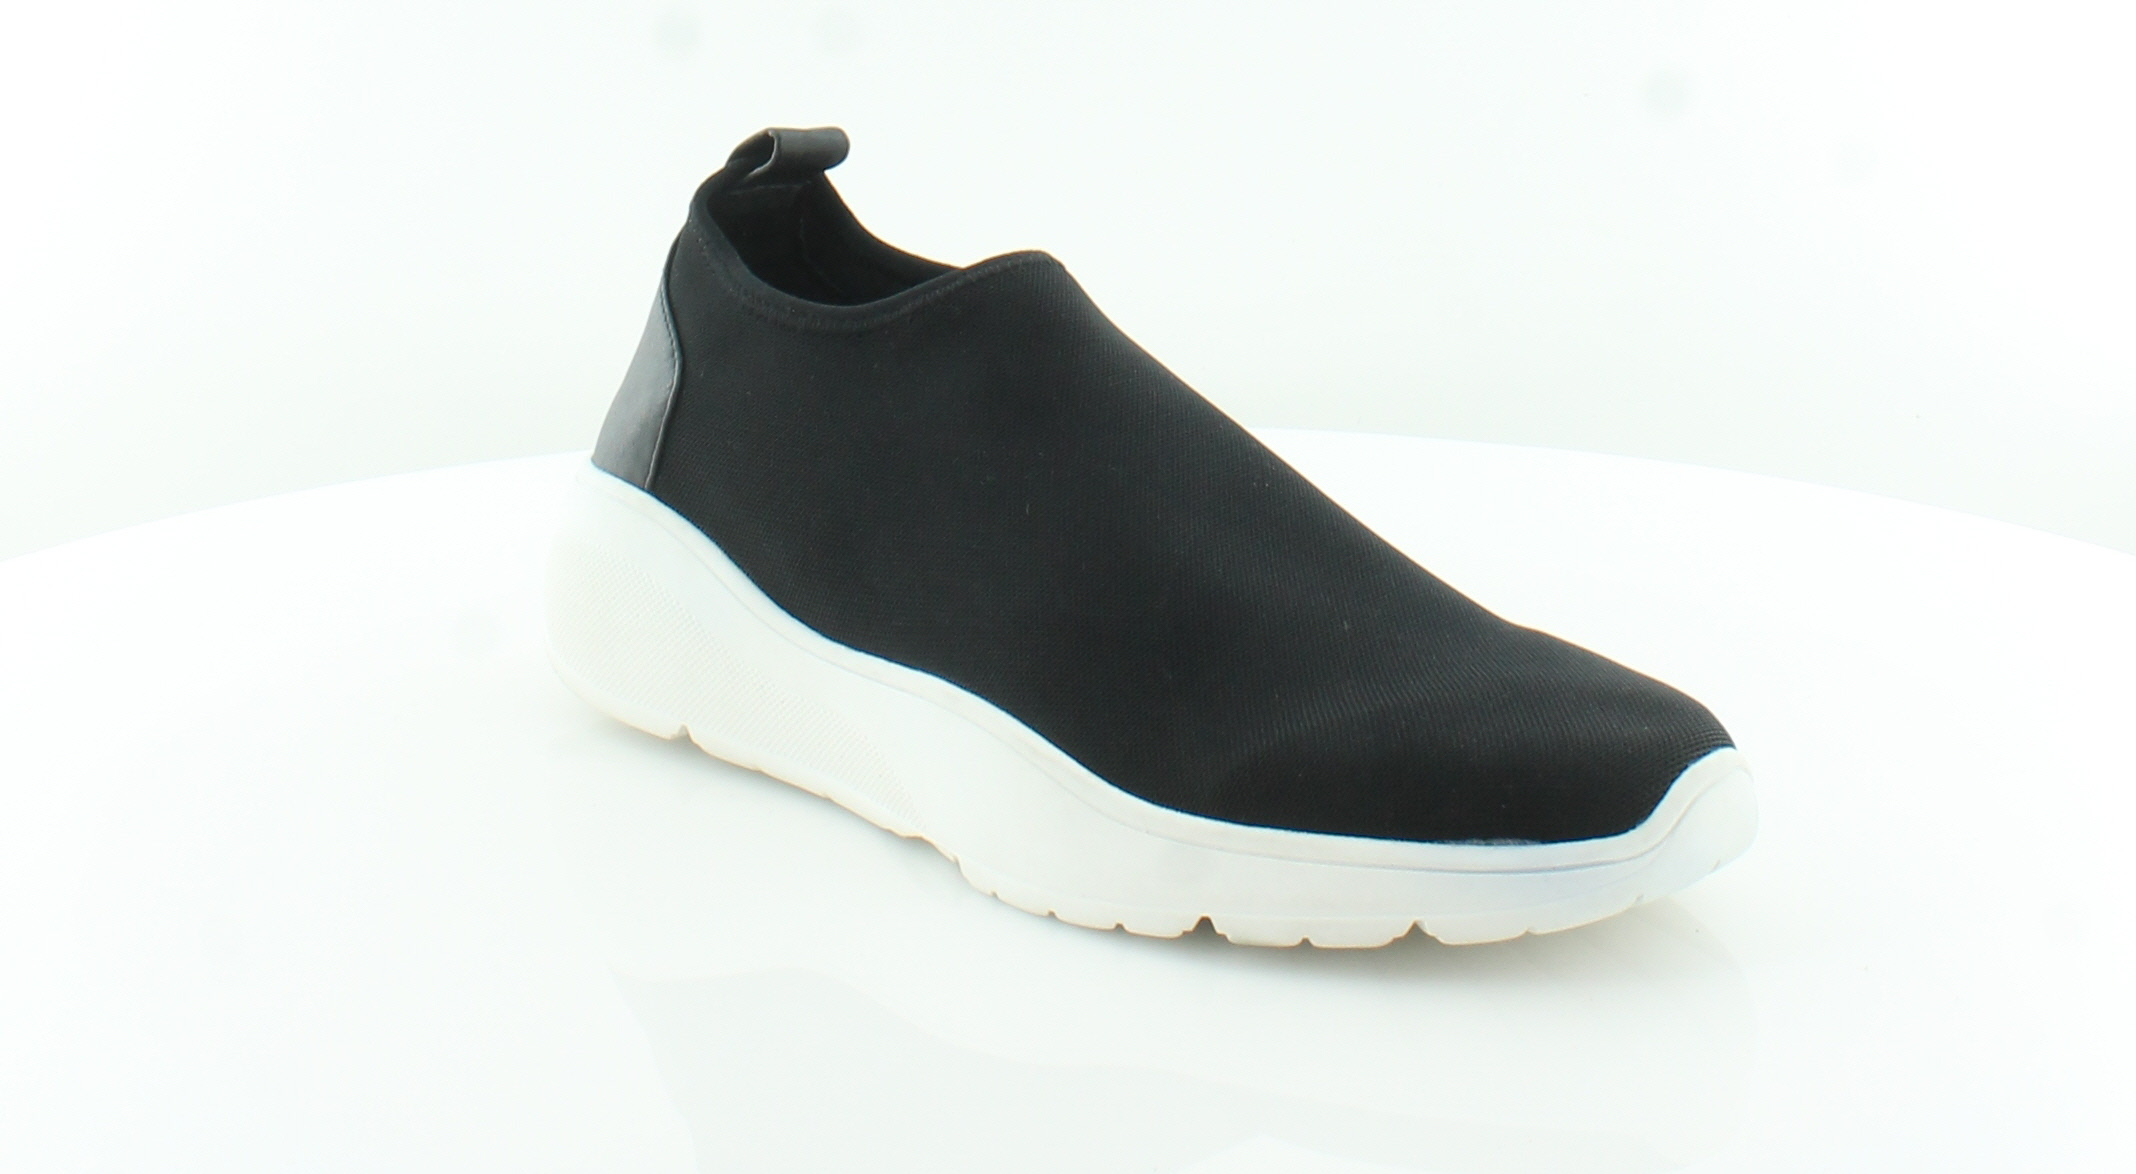 2dedd8a2923 Details about Steve Madden New Floren Black Womens Shoes Size 7.5 M Fashion  Sneakers MSRP $79